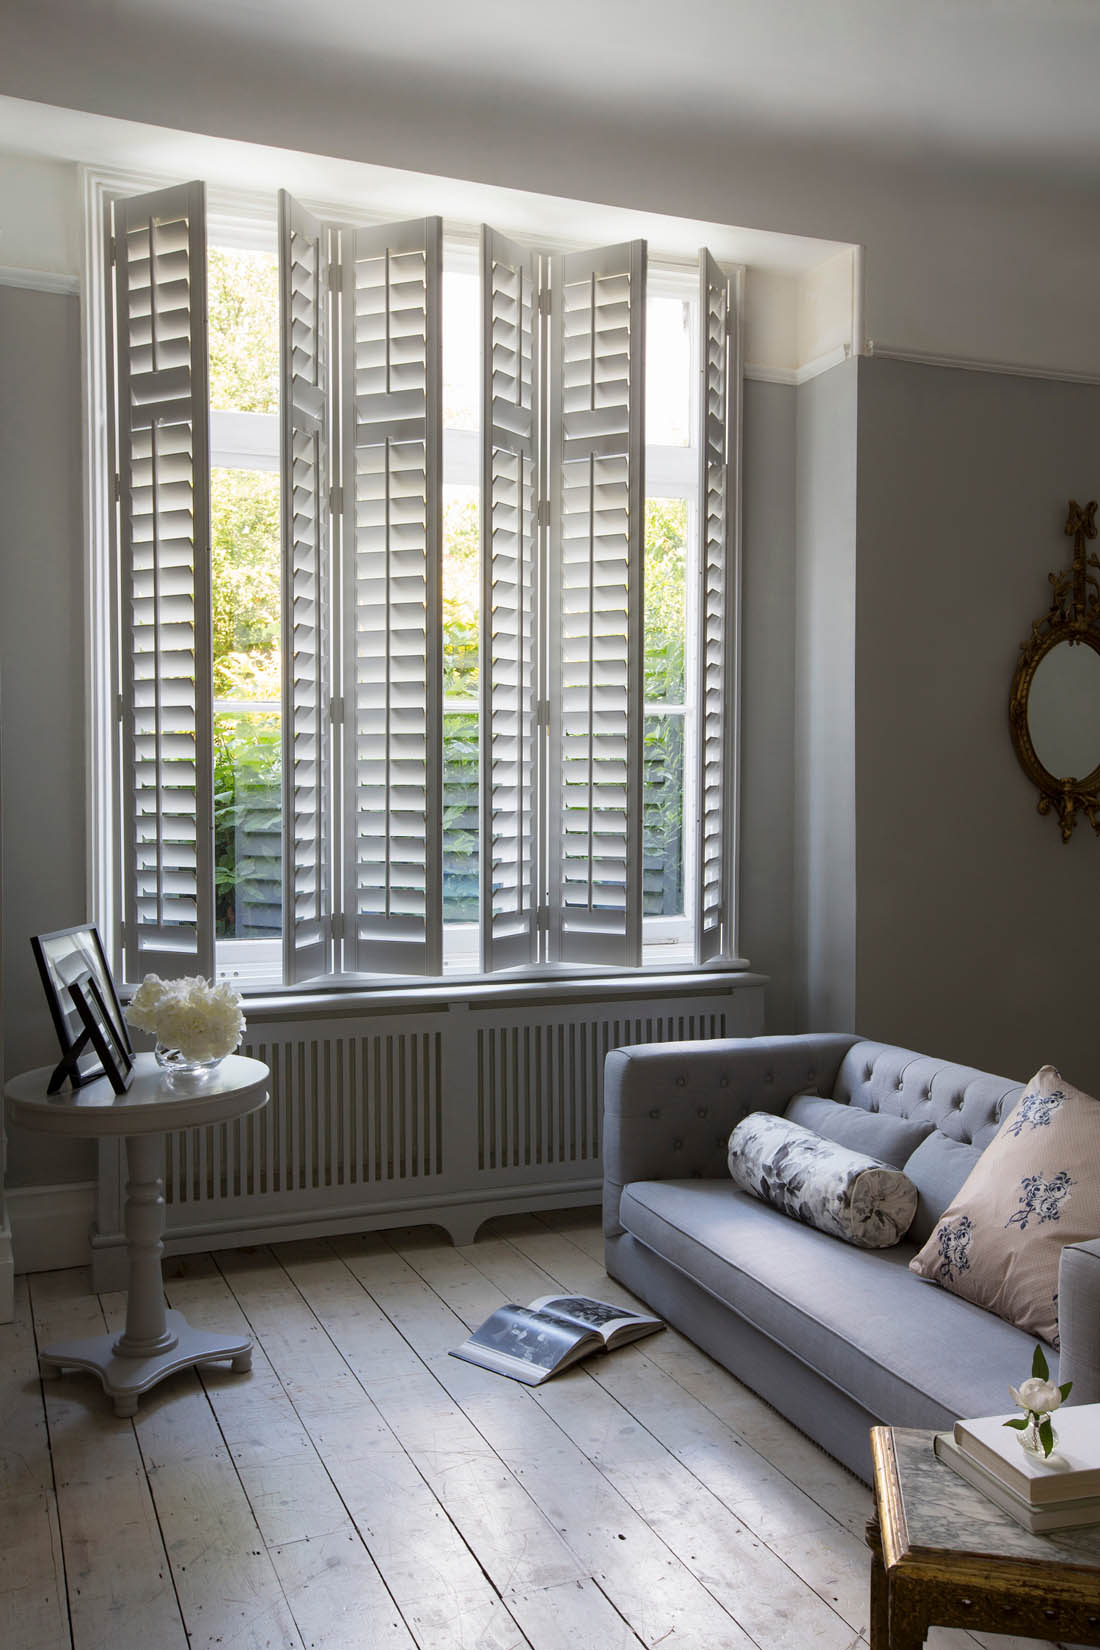 Full height interior wooden shutters in living room | Making the most of your windows | Luxaflex shutters | Apartment Apothecary